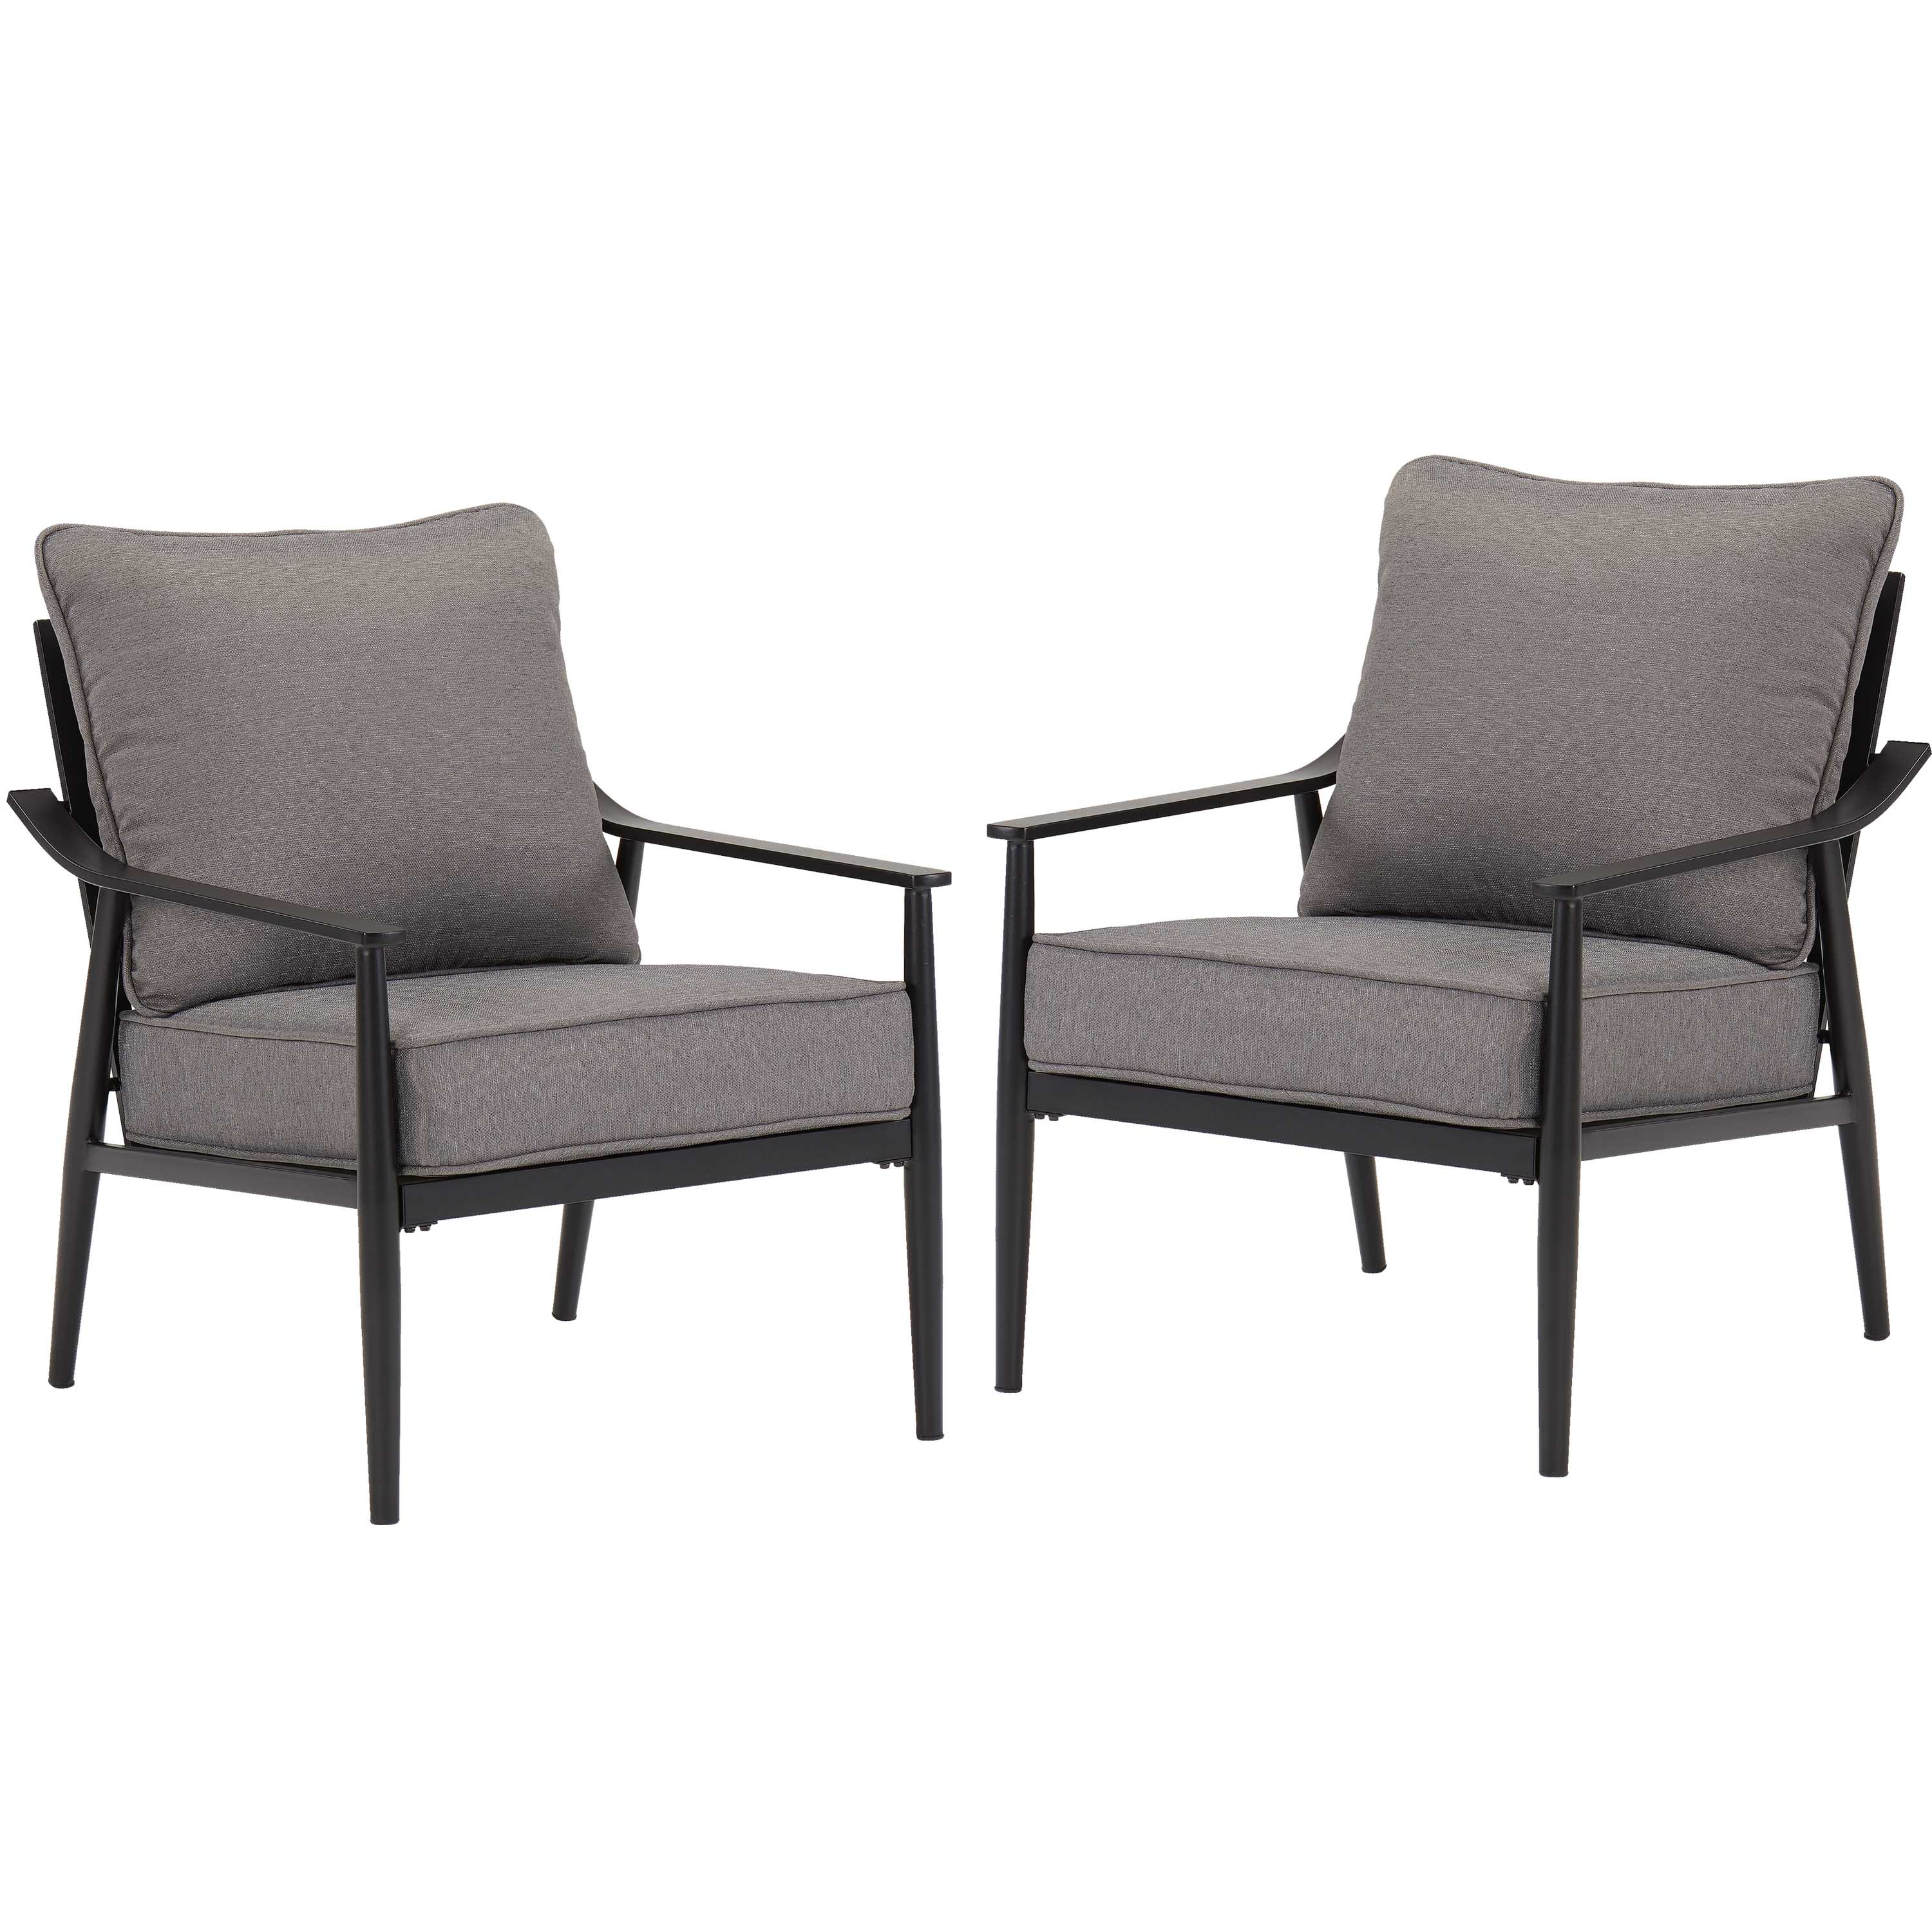 Lounge Chairs In White With Grey Cushions Within Best And Newest Better Homes & Gardens Acadia Patio Lounge Chairs With Gray Cushions, Set  Of 2 – Walmart (View 13 of 25)